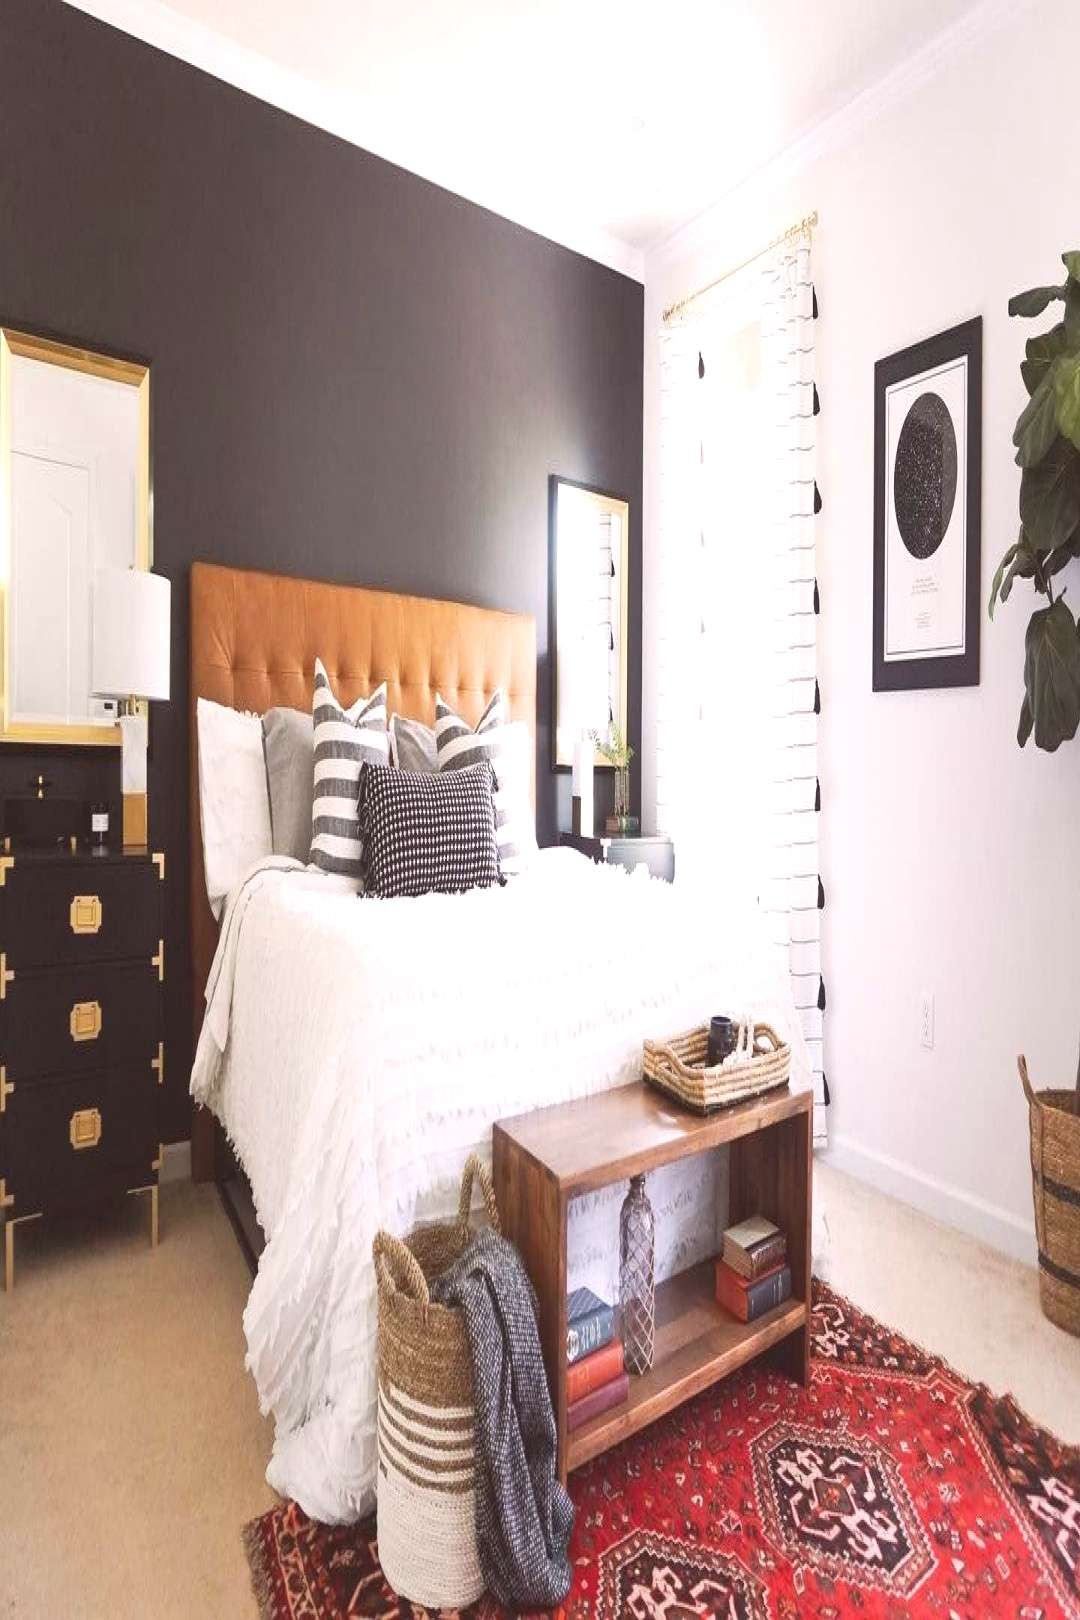 Still so in love with our master bedroom makeover! I'm debating if I want to put something over o